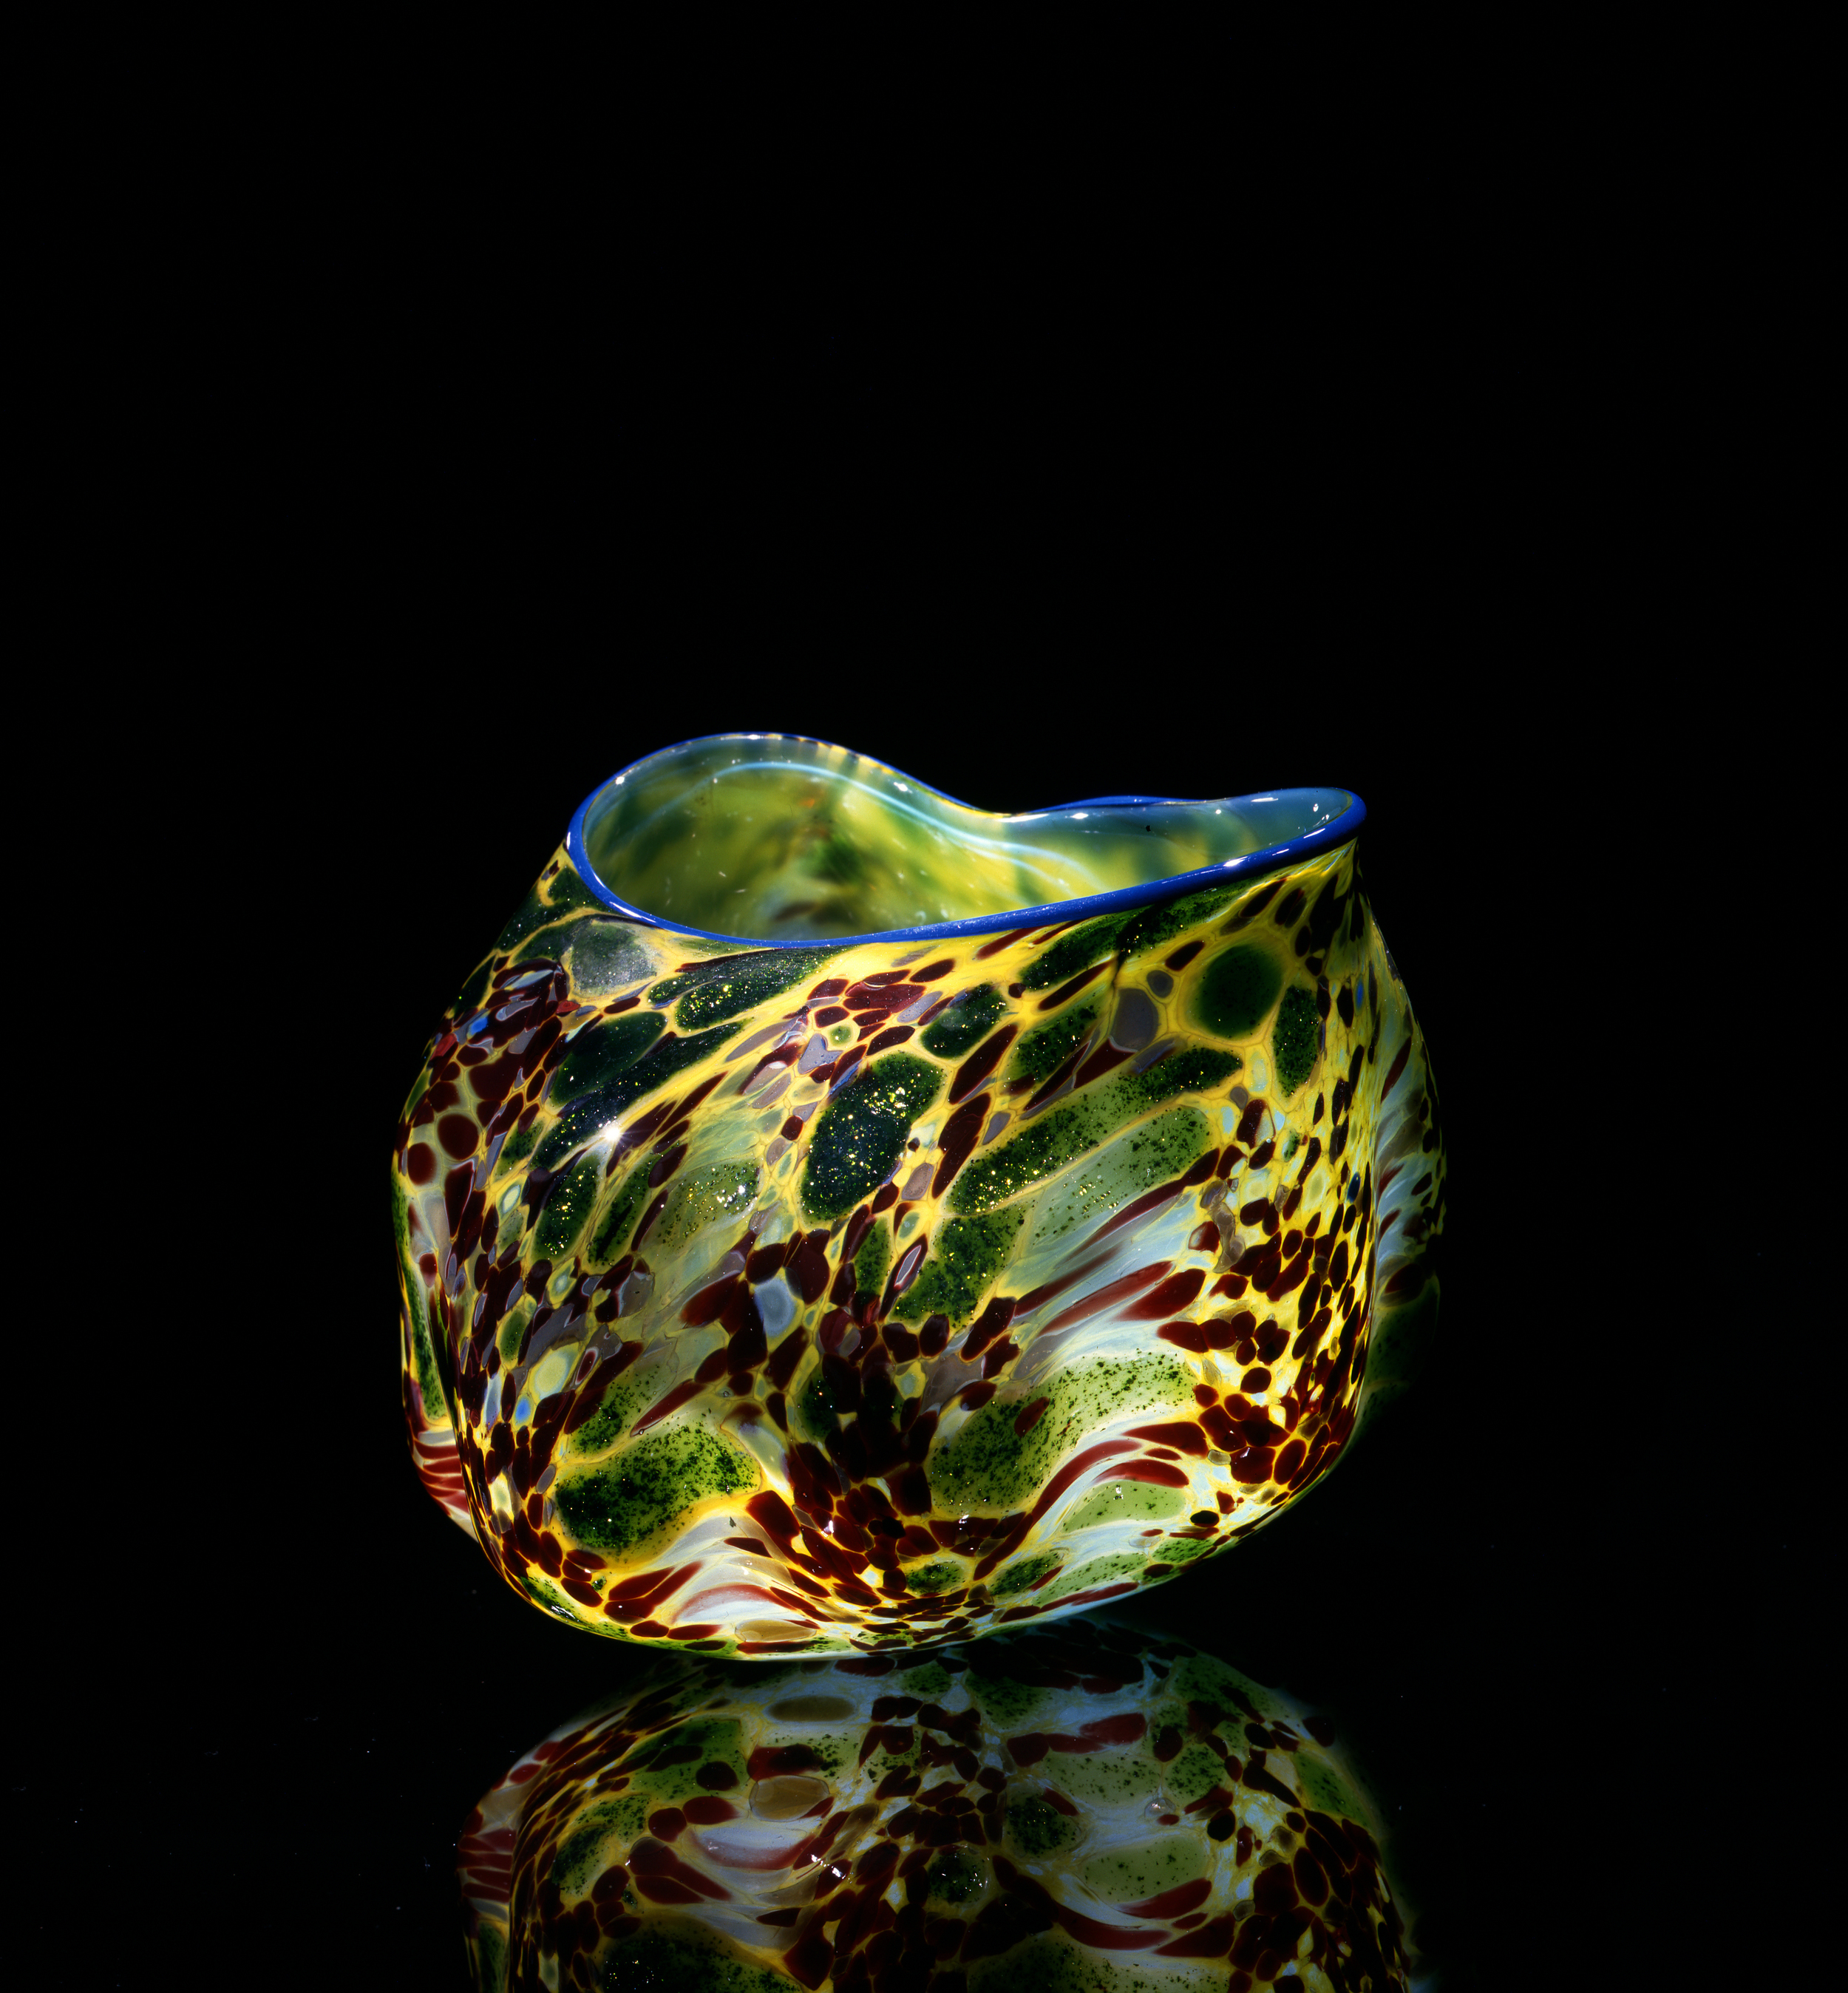 Dale Chihuly, Lumiere Green Macchia with Lapis Blue Lip Wrap (1981, glass, 5 x 5 x5 inches), DC.61